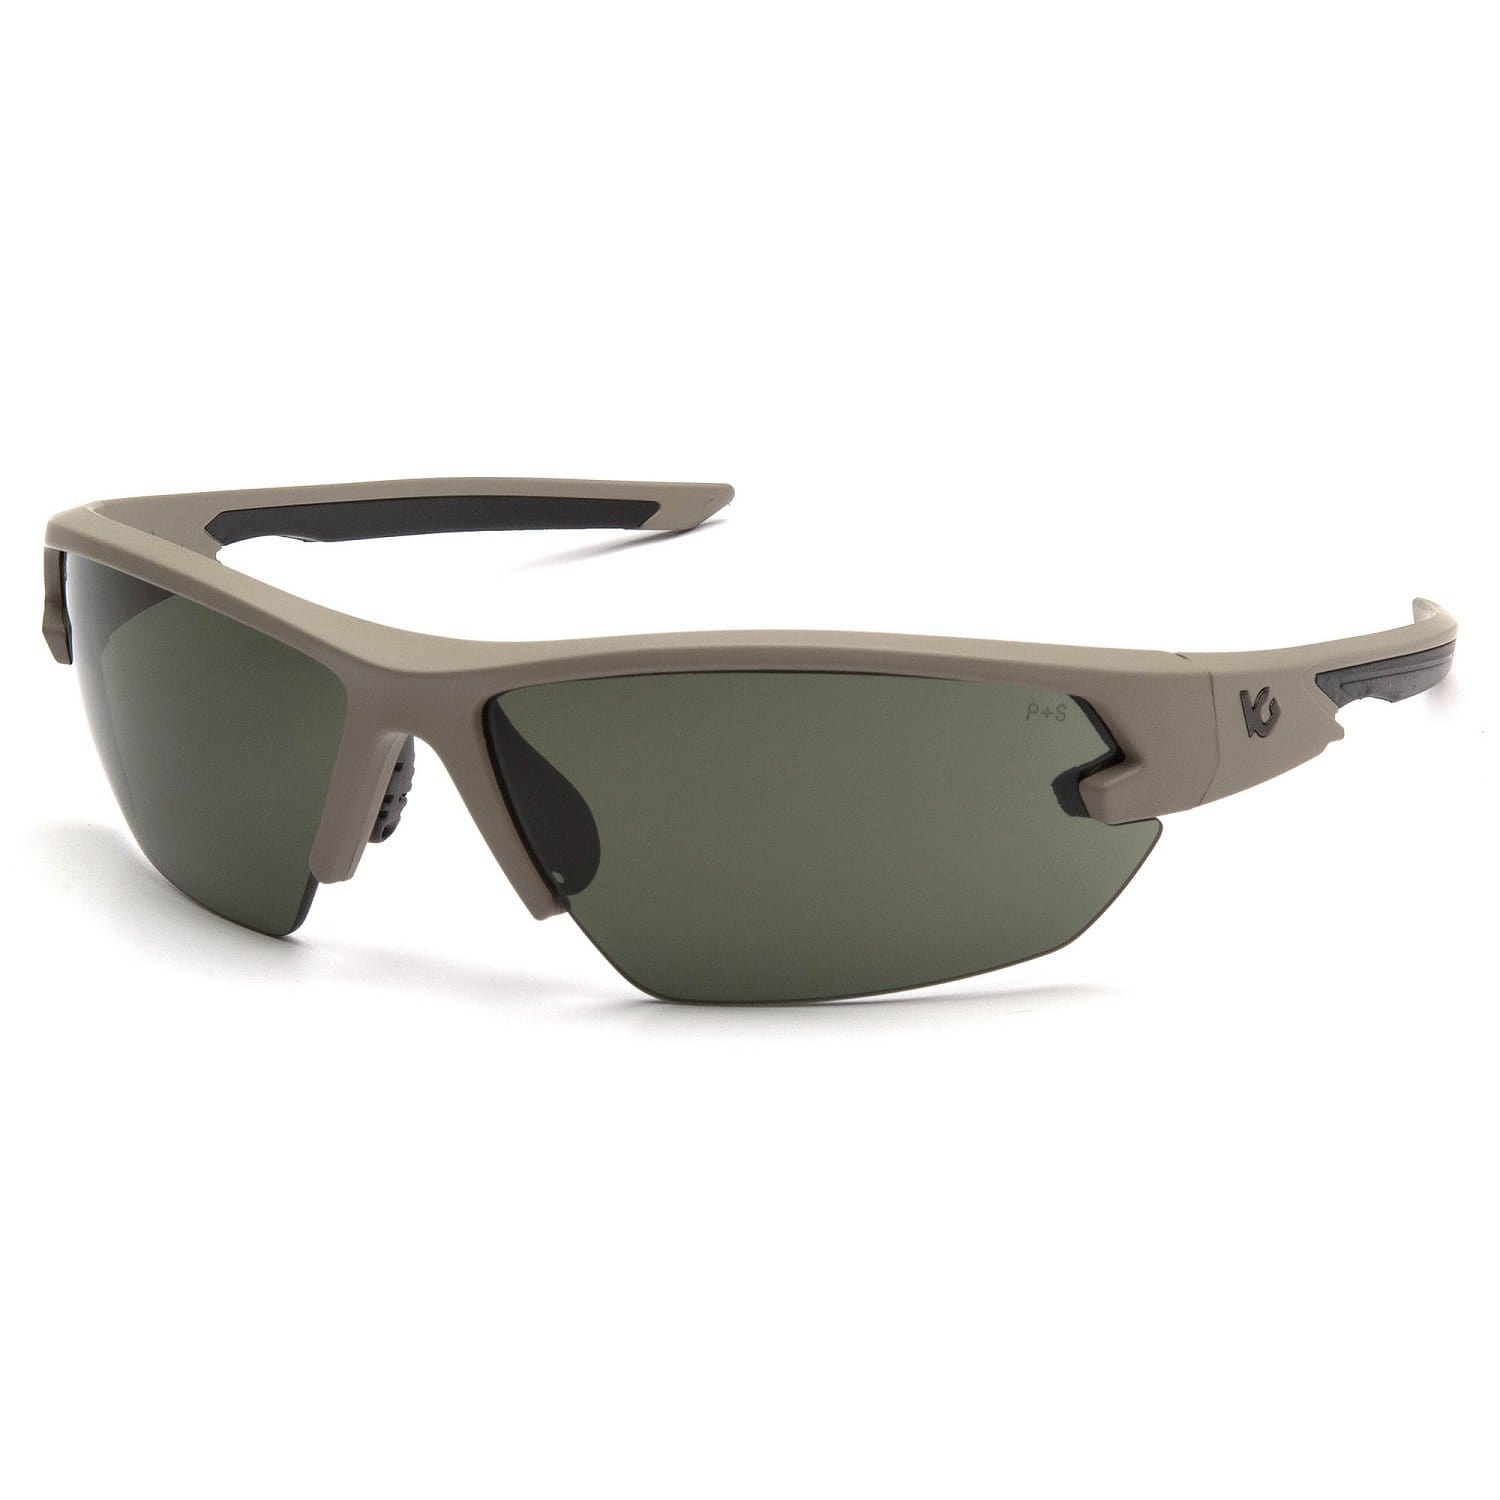 Venture Gear Semtex 2.0 Tan Frame Gray Anti Fog Lens